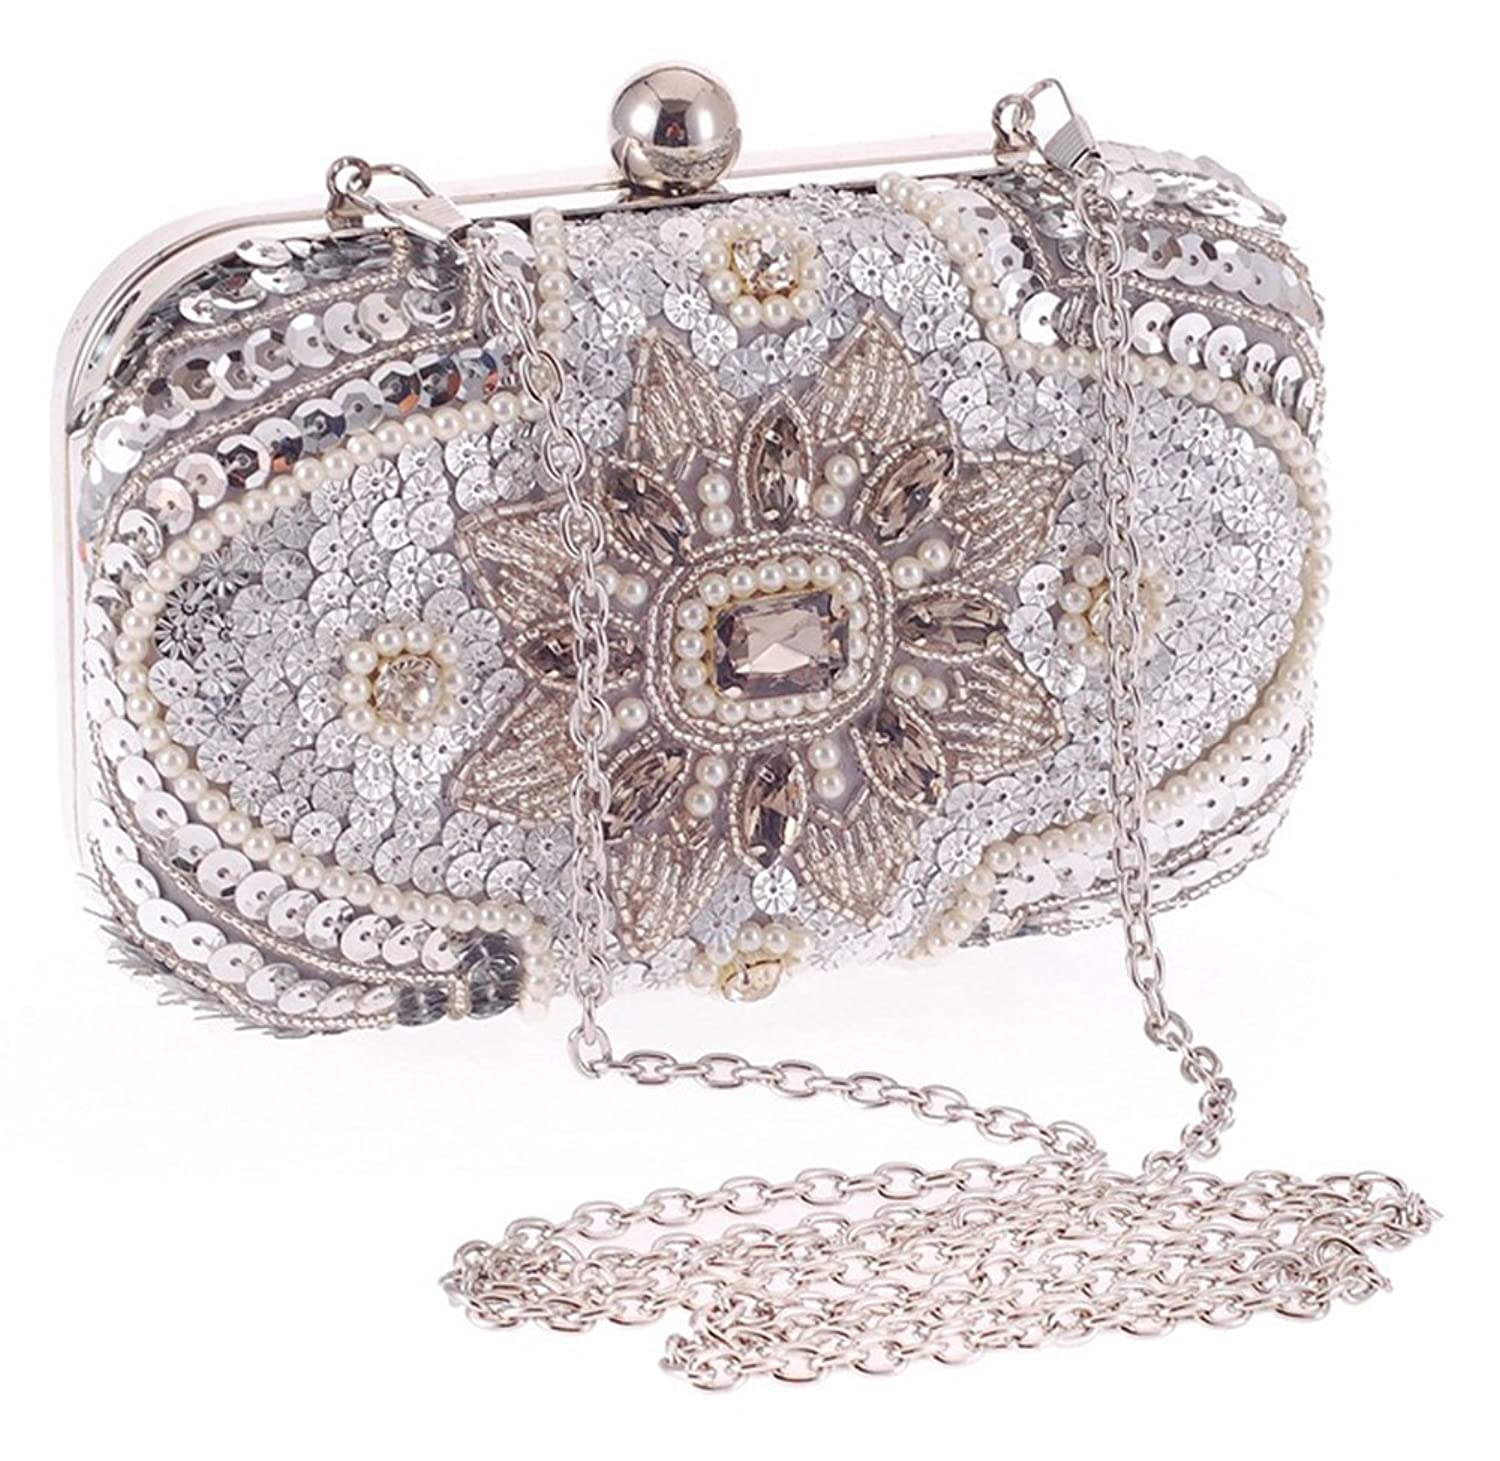 Auspicious beginning Noble Elegant Diamond Chian Clutch Evening Bag Handbag